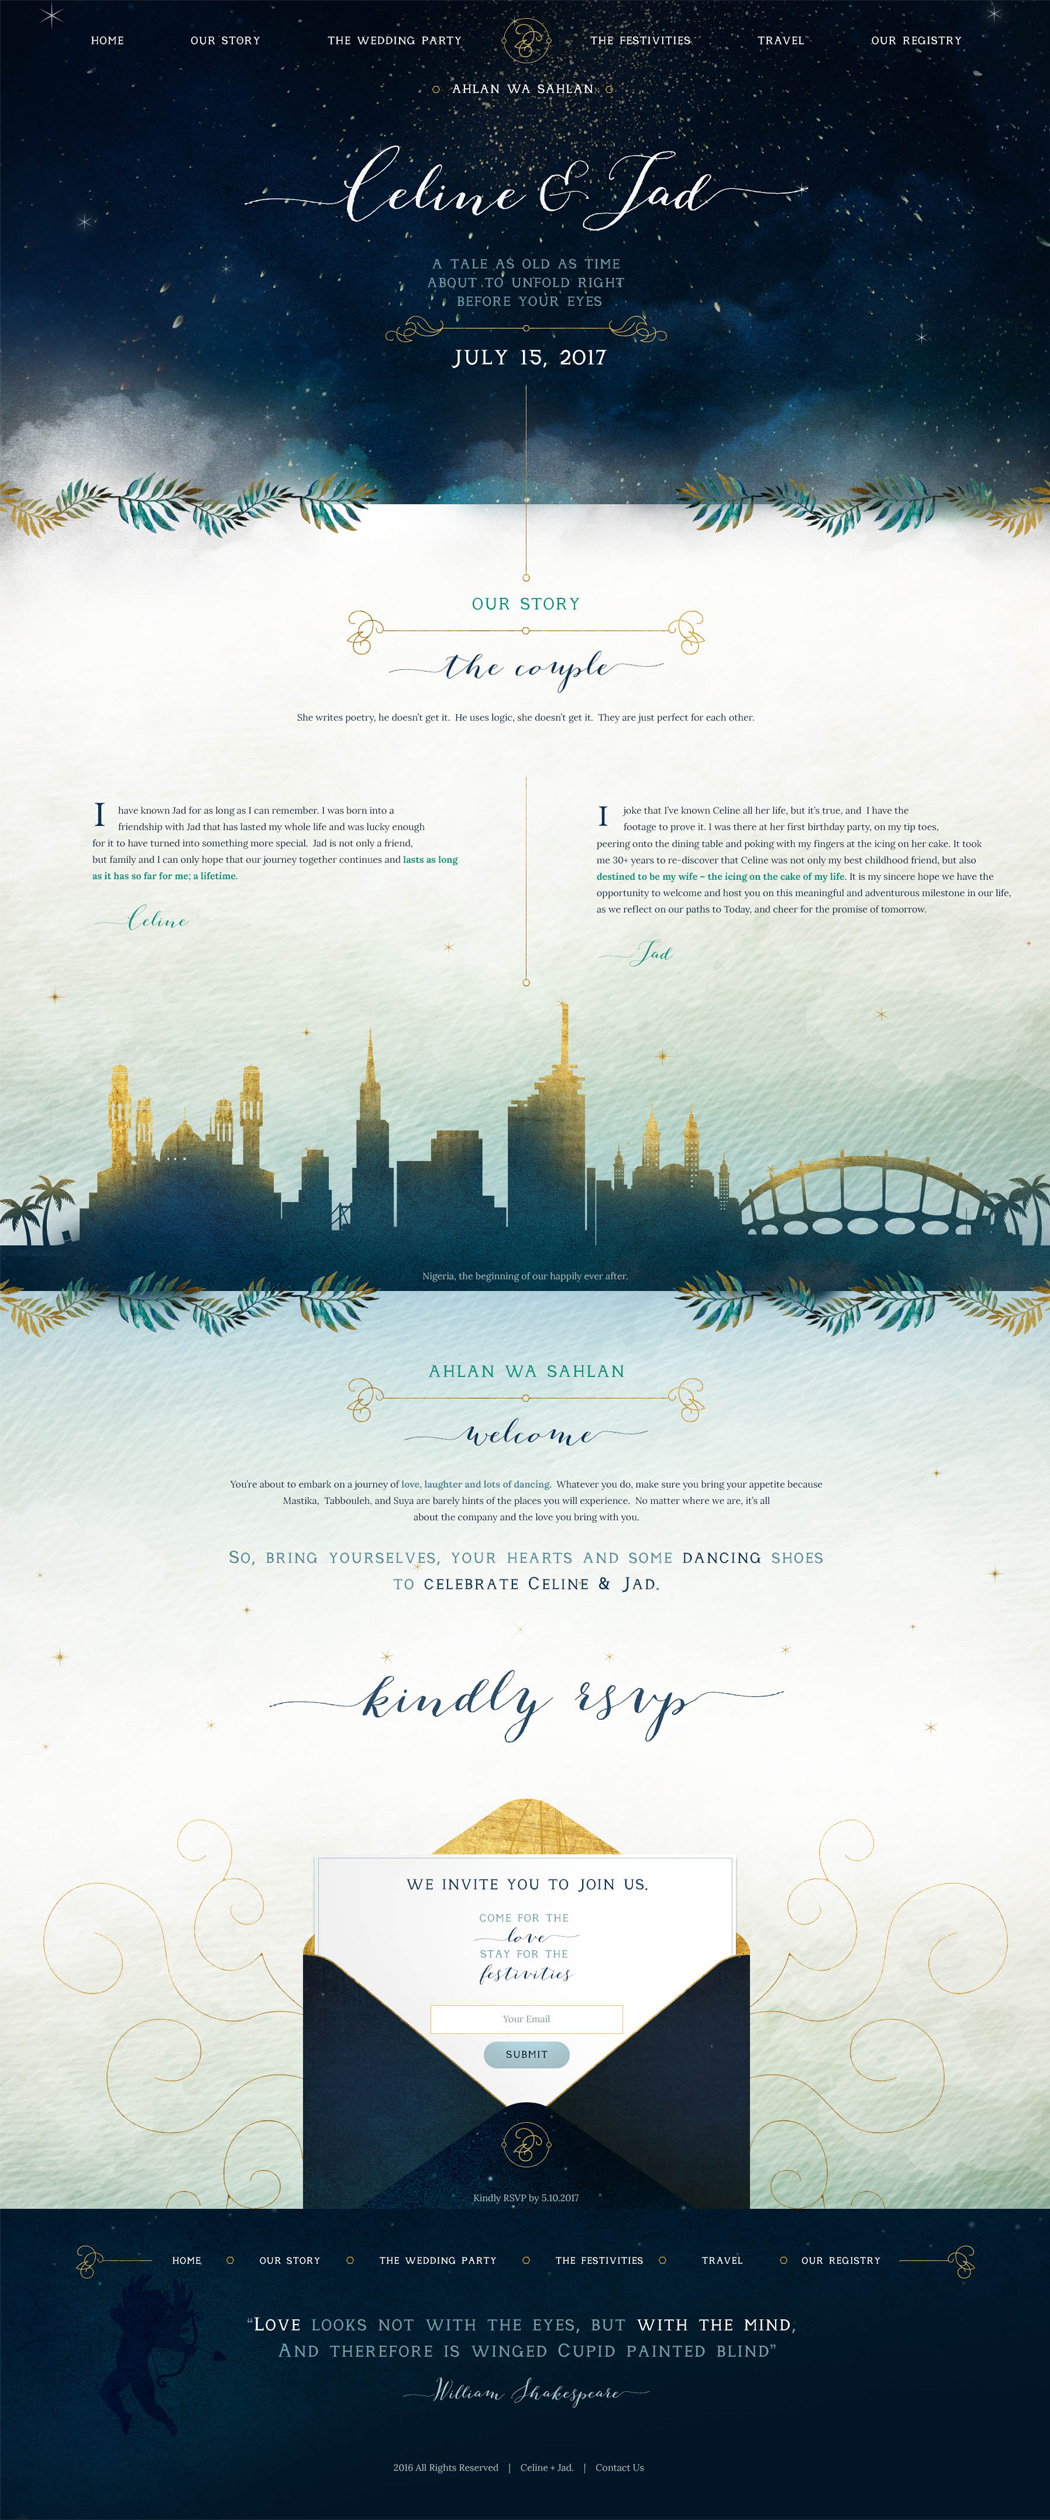 San Diego Multi-Event Wedding Website Design - Celine & Jad